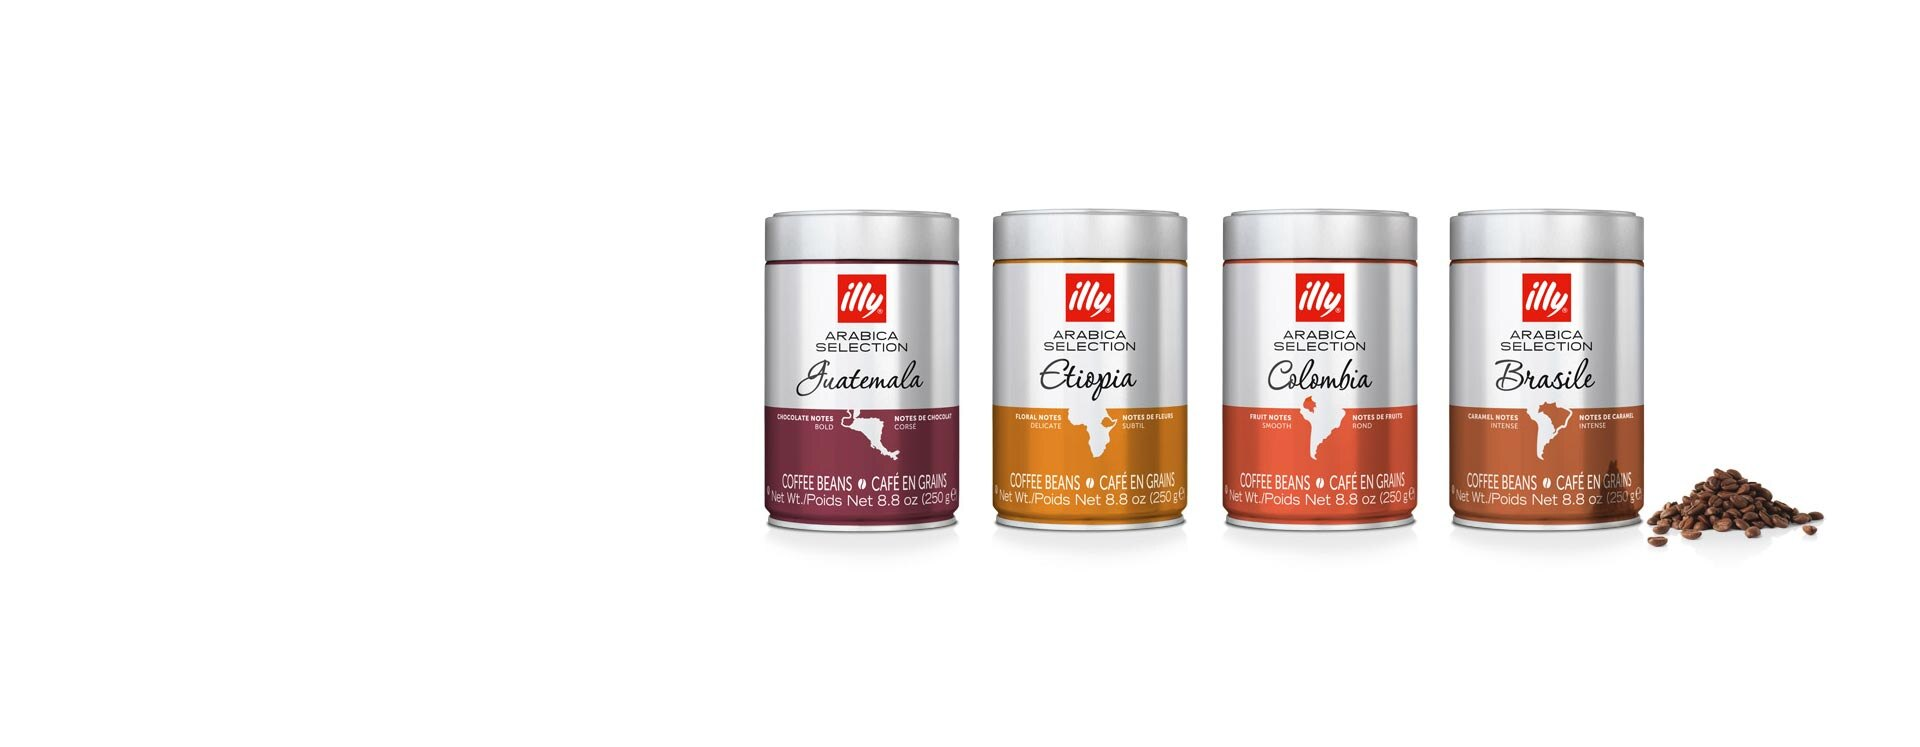 illy Best Selling Coffee and Espresso and iperEspresso capsules